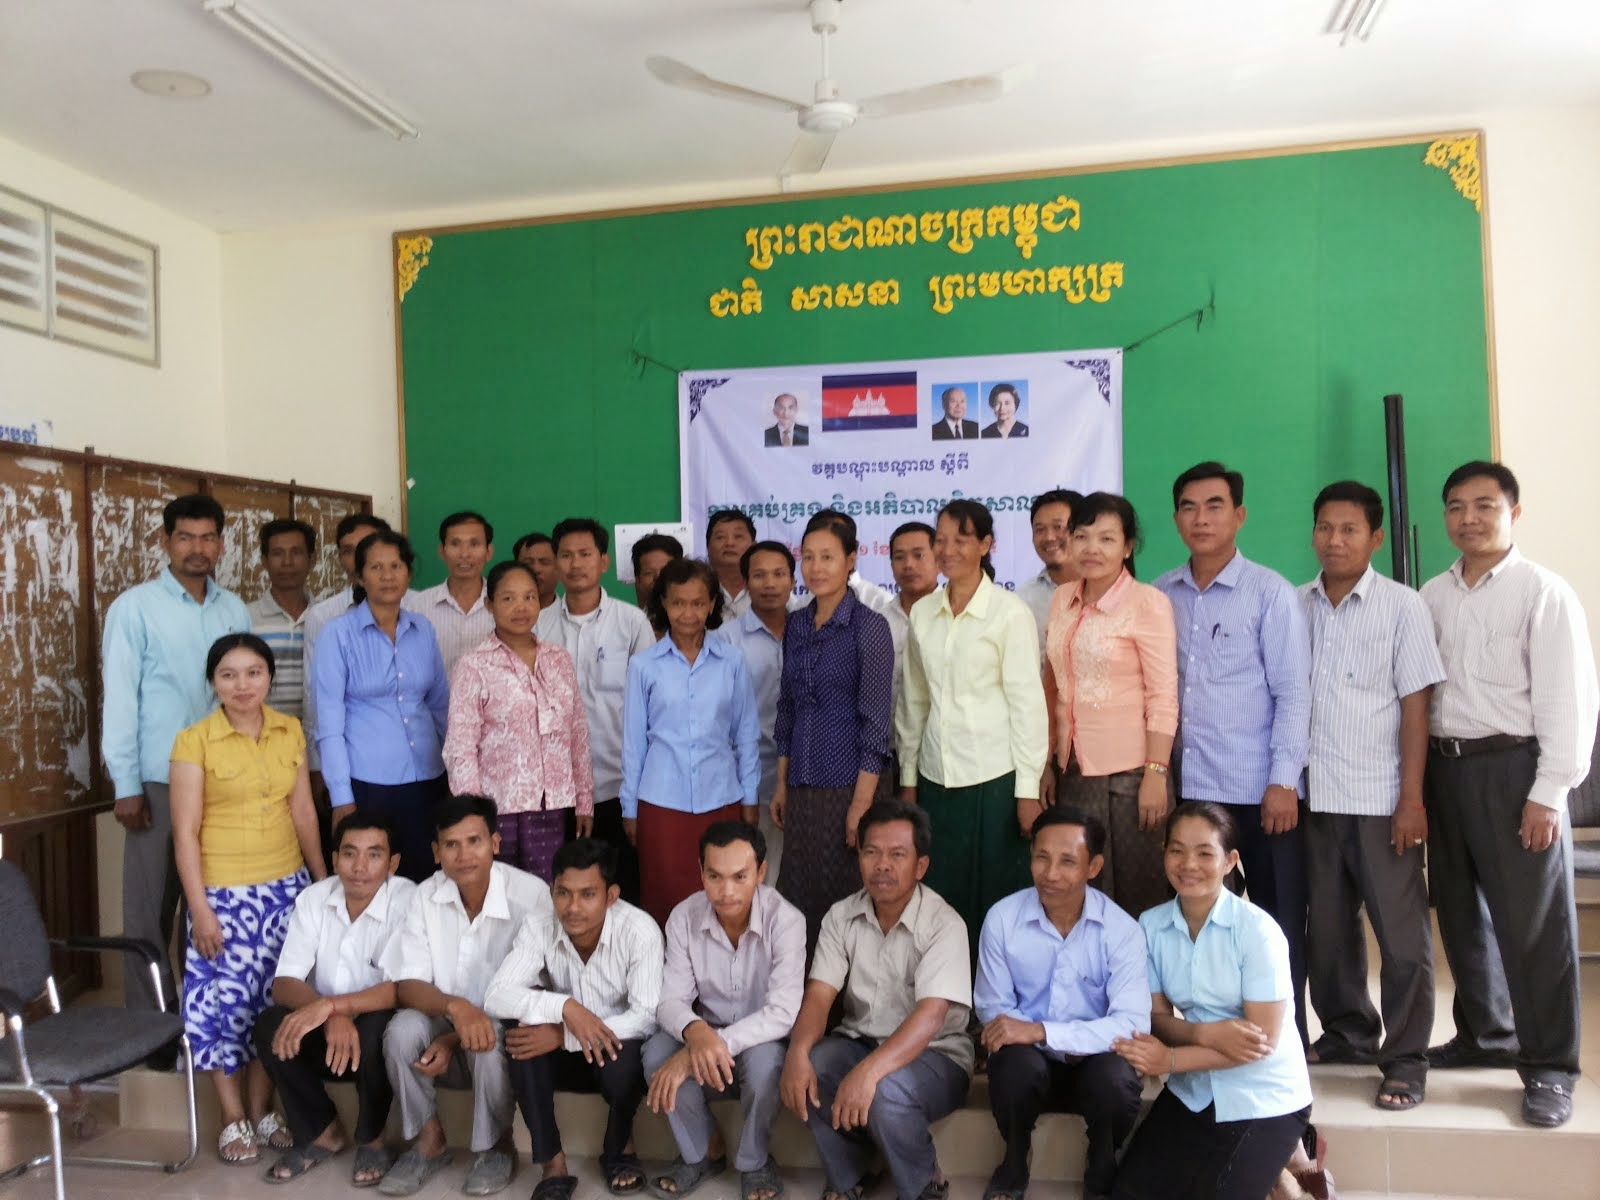 Group picture after course completion on School Governance and Management in Kratie province.